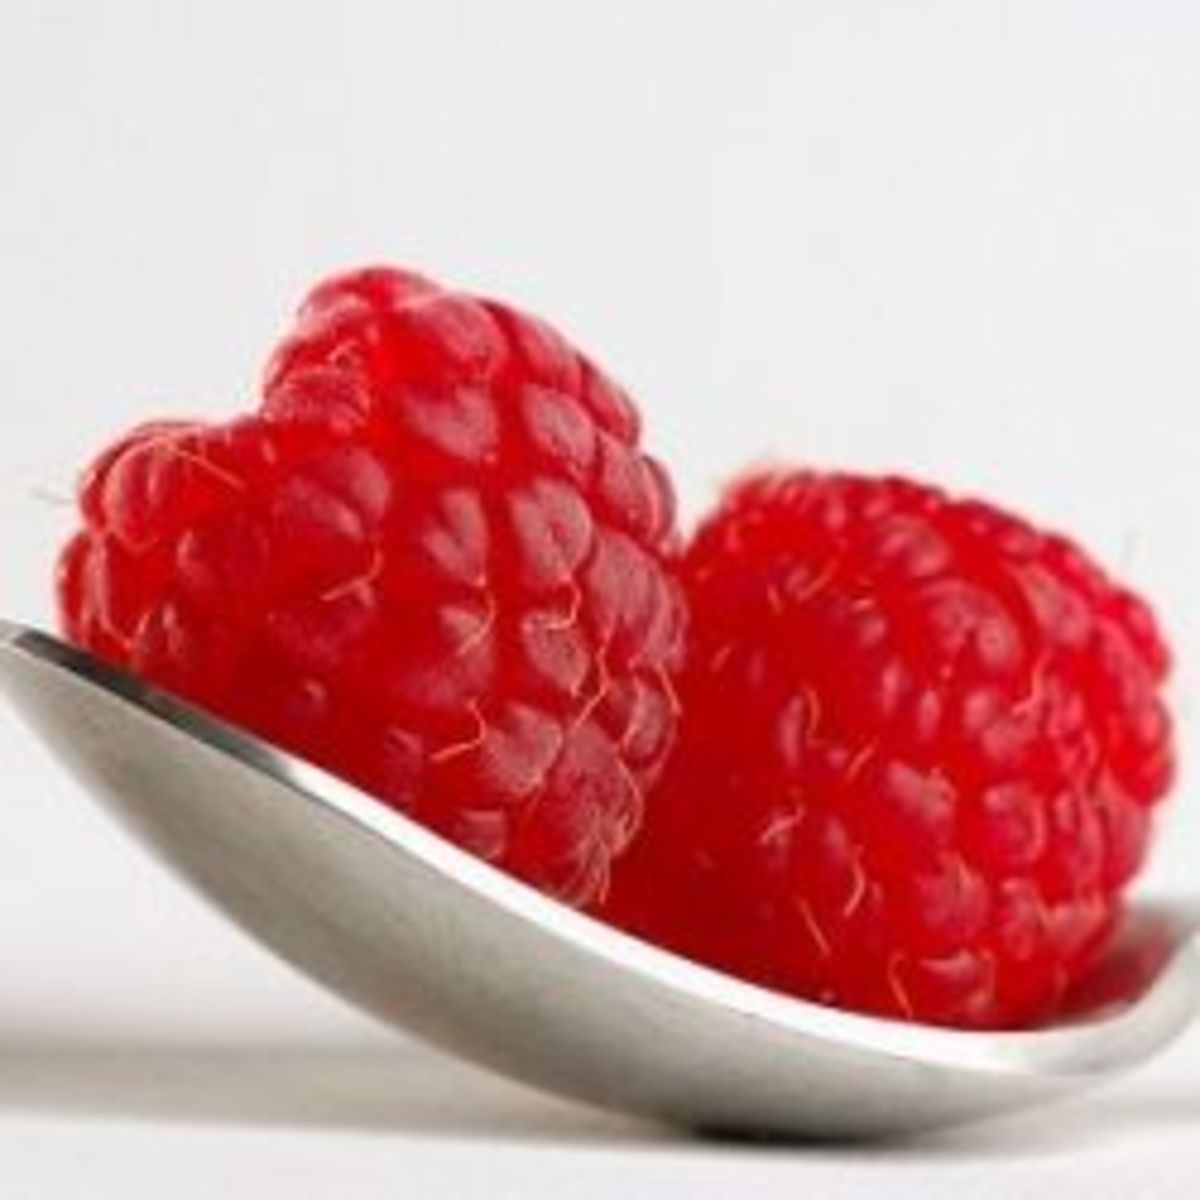 Raspberries - My Favorite Fruit